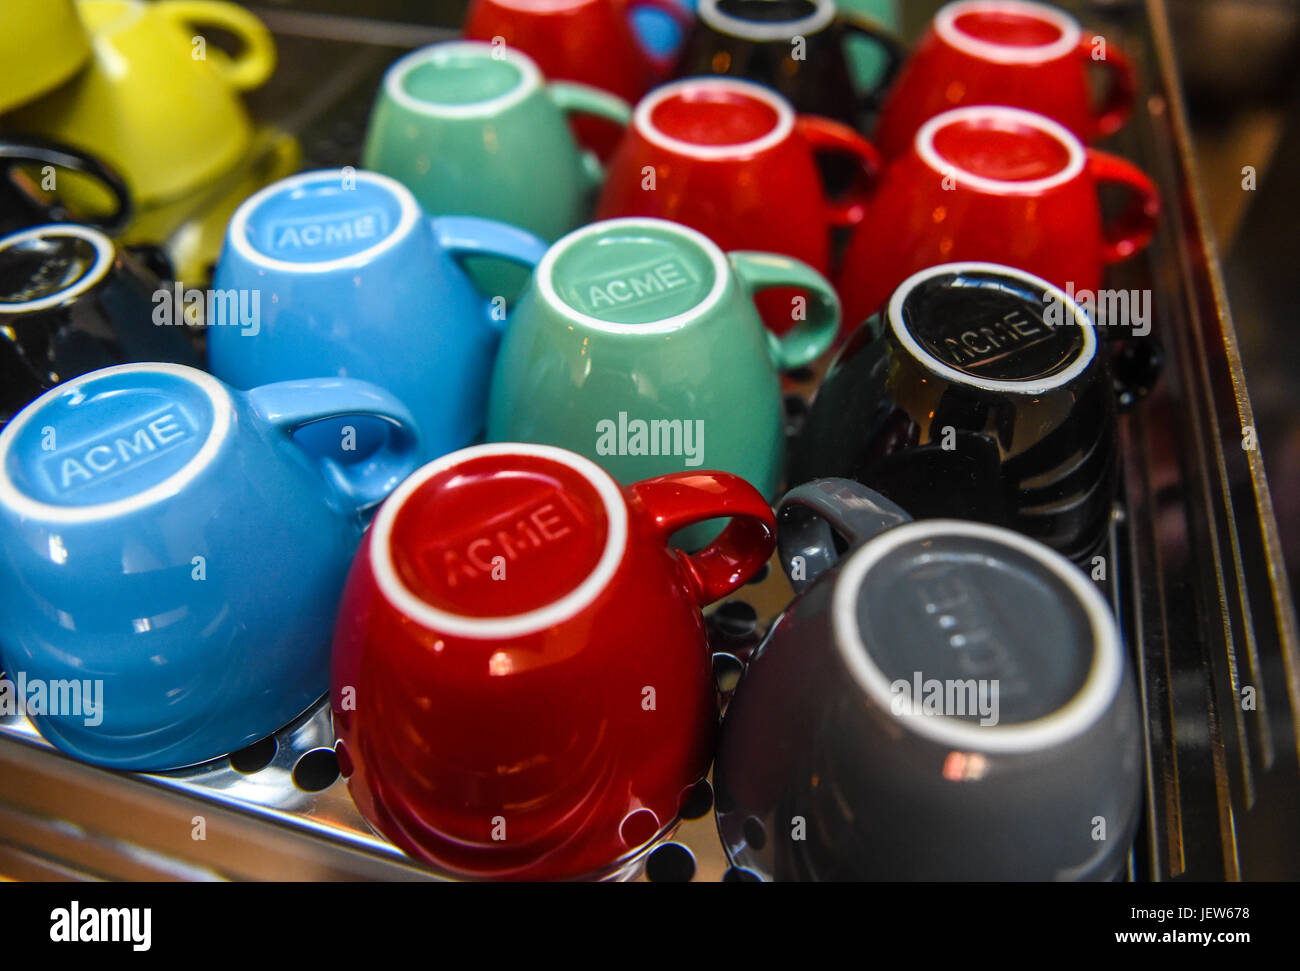 Copyrighted Image by Paul Slater/PSI -  Coloured Coffee mugs on display, drying. - Stock Image